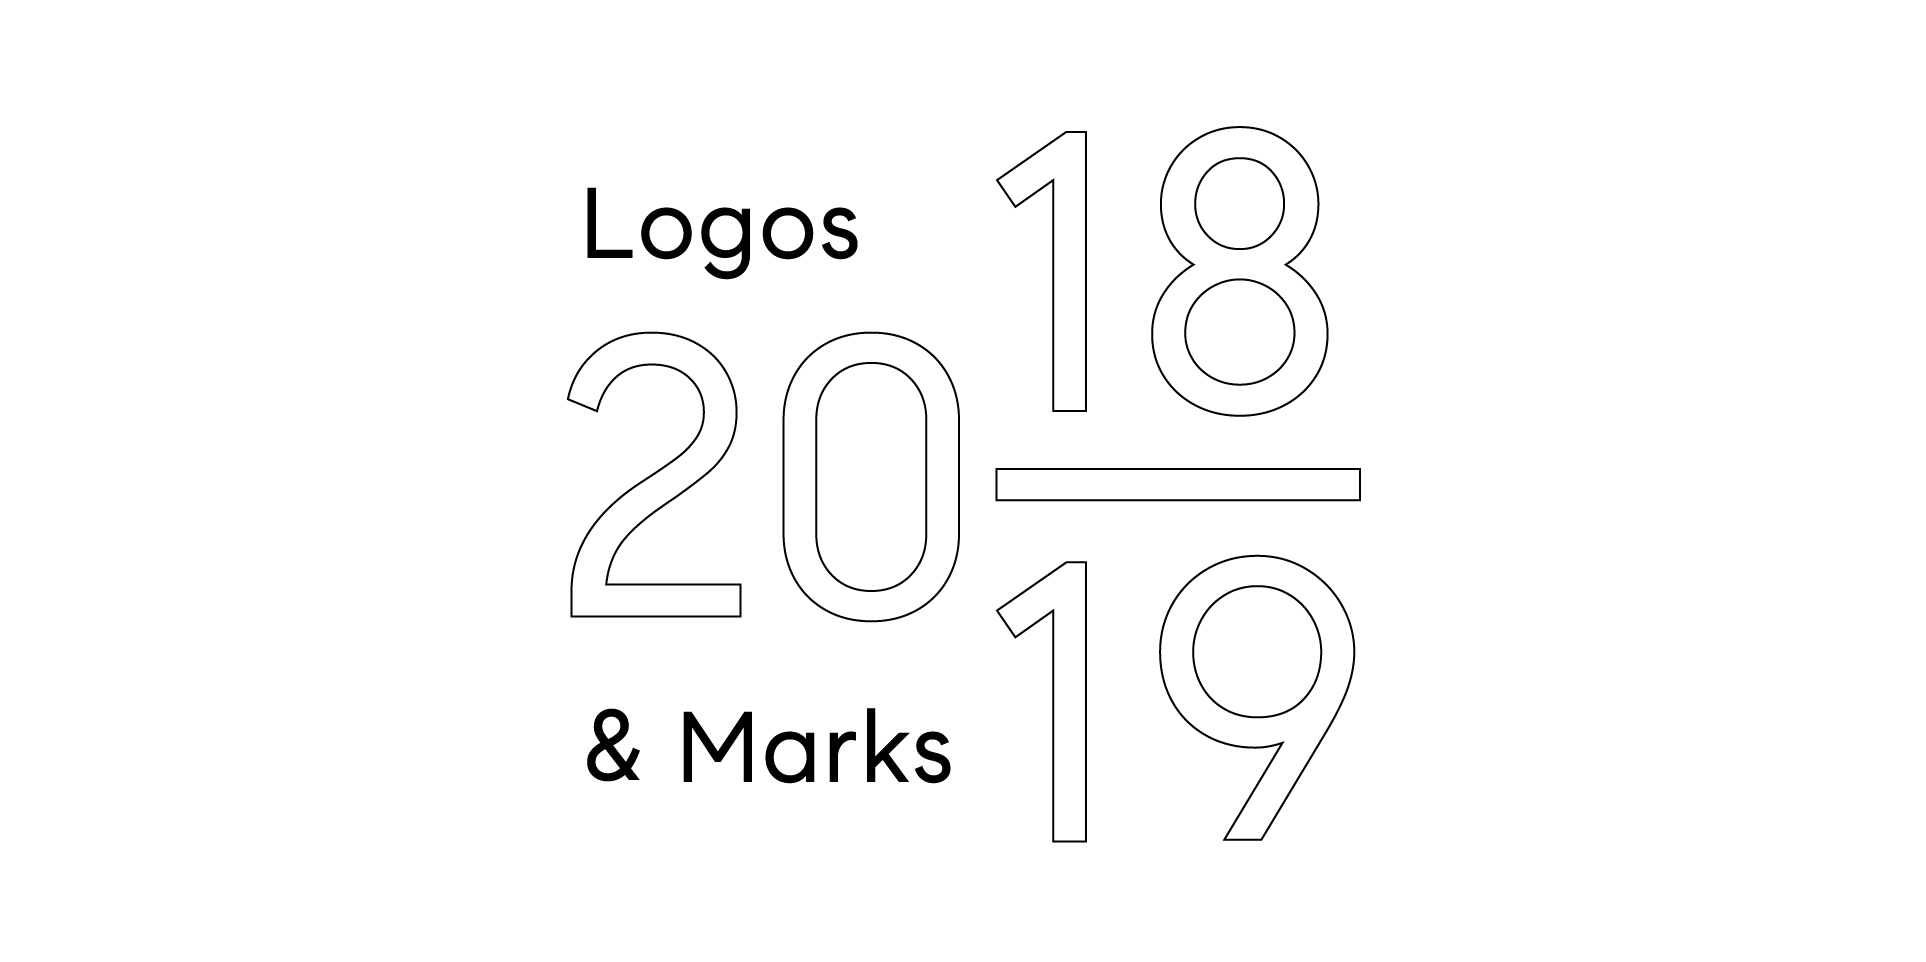 LOGOS AND MARKS | 2018 - 2019